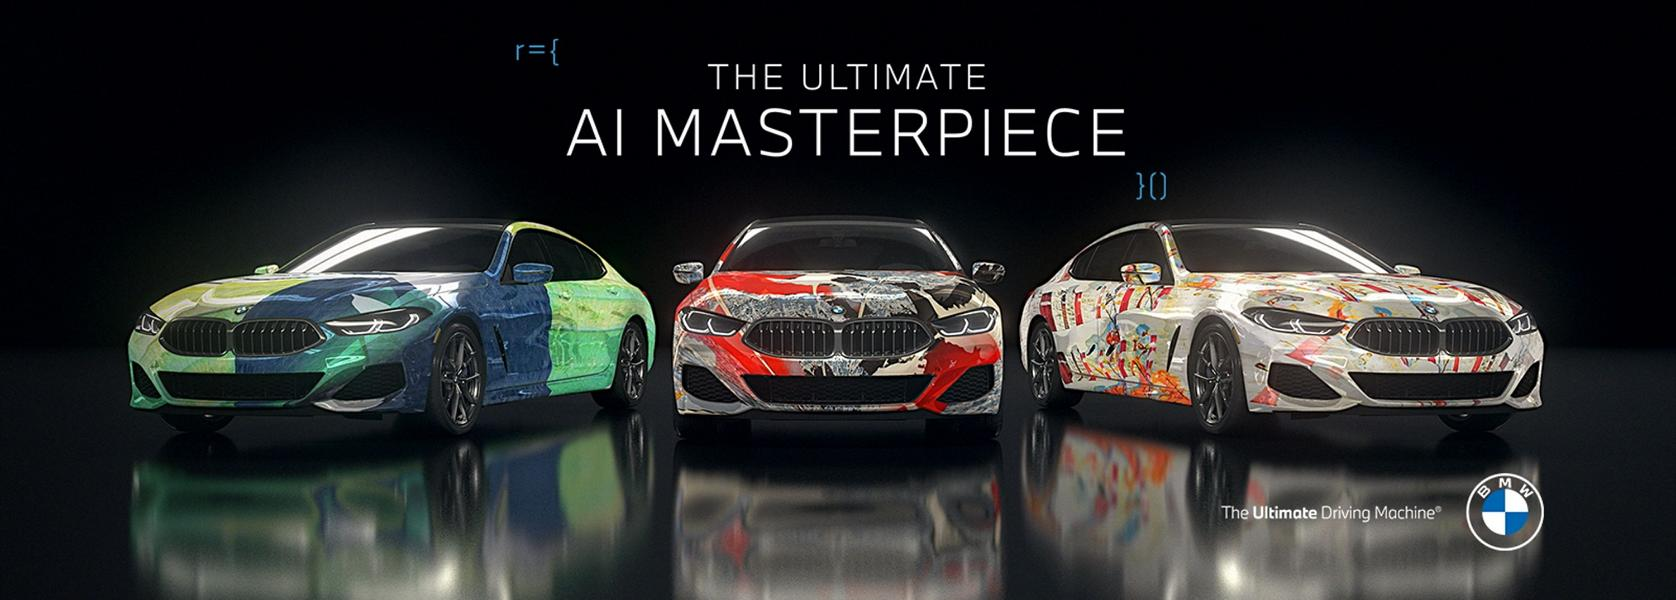 """The Ultimate AI Masterpiece BMW 8er 1 """"The Ultimate AI Masterpiece"""": BMW 8er als Kunstwerk!"""